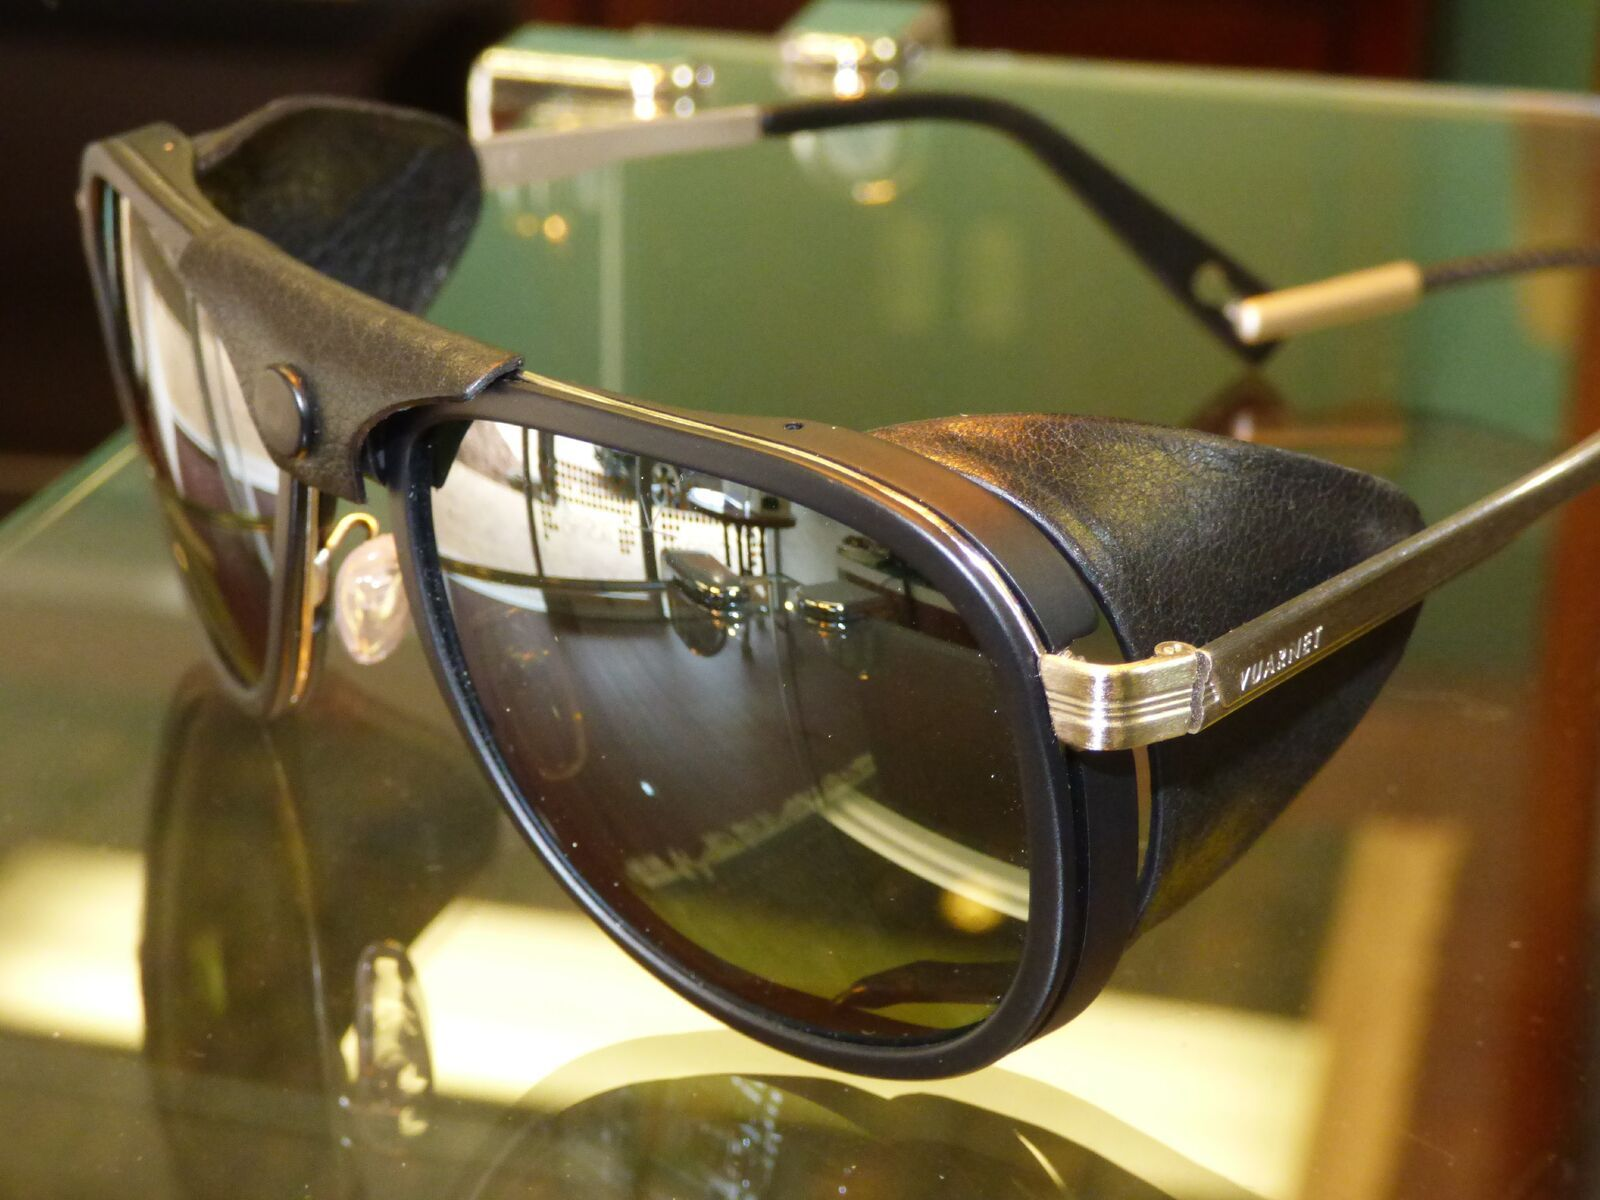 Chocoholic alert. With all things chocolate on our minds, check out these gorgeous chocolate toned Vuarnet sunglasses (which once featured in a James Bond movie) ... guaranteed to make your Easter extra delicious. Sanctuary Cove Optical